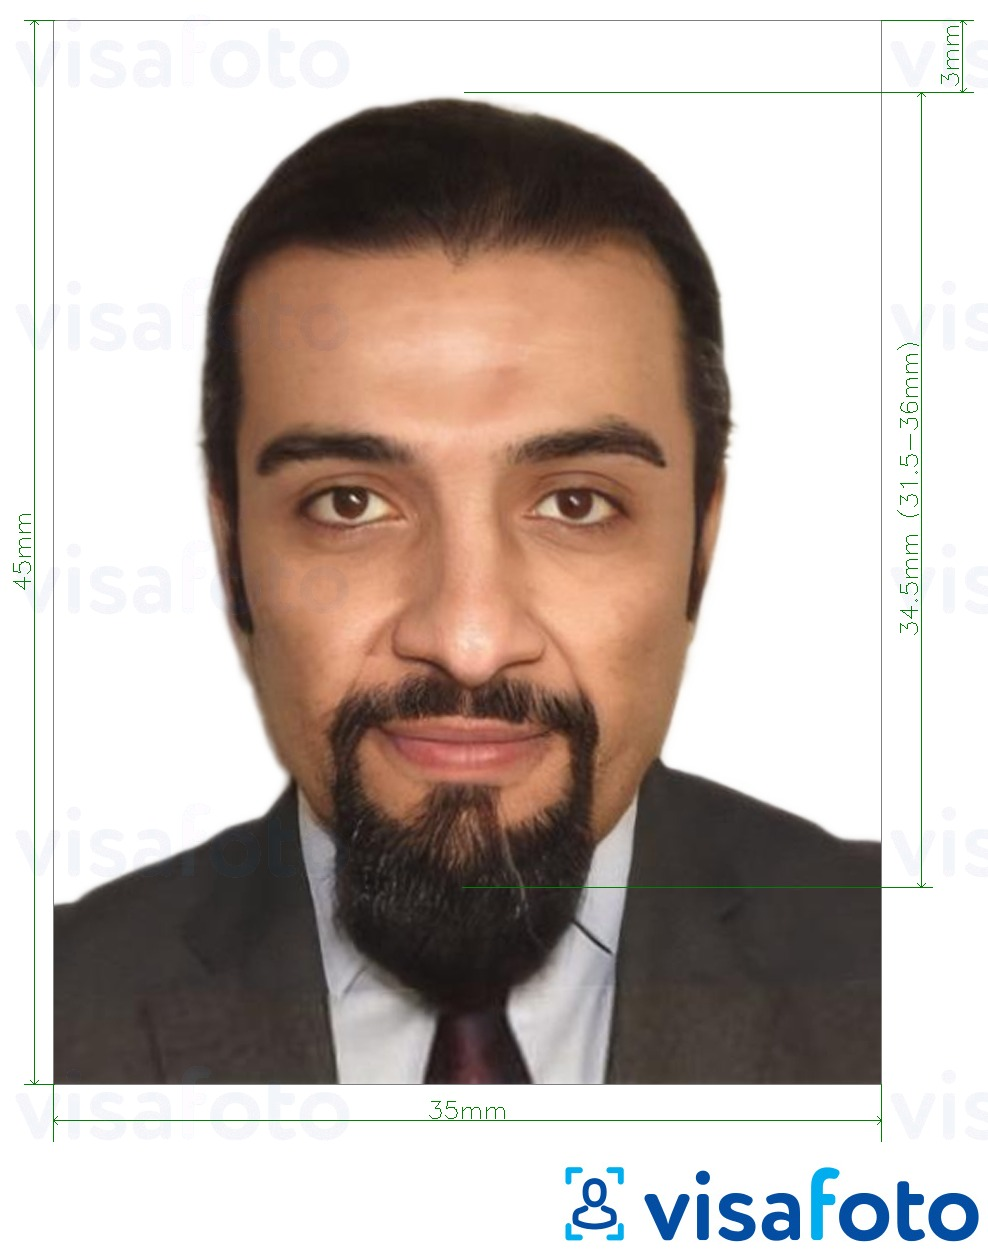 Example of photo for Iraq passport 35x45 mm (3.5x4.5 cm) with exact size specification